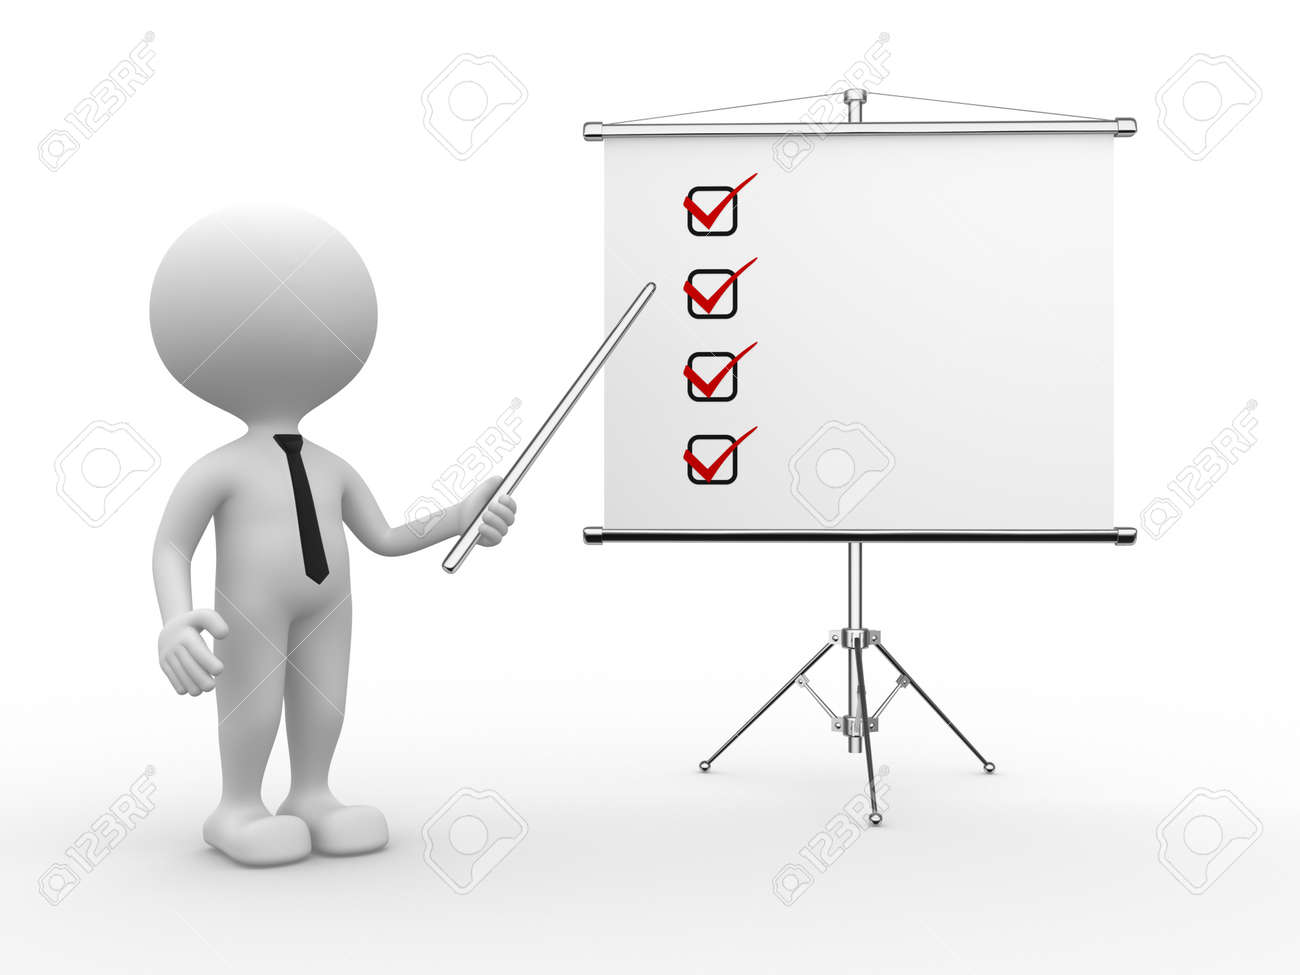 3d people - man, person and flip chart. Checklist Stock Photo - 21138631